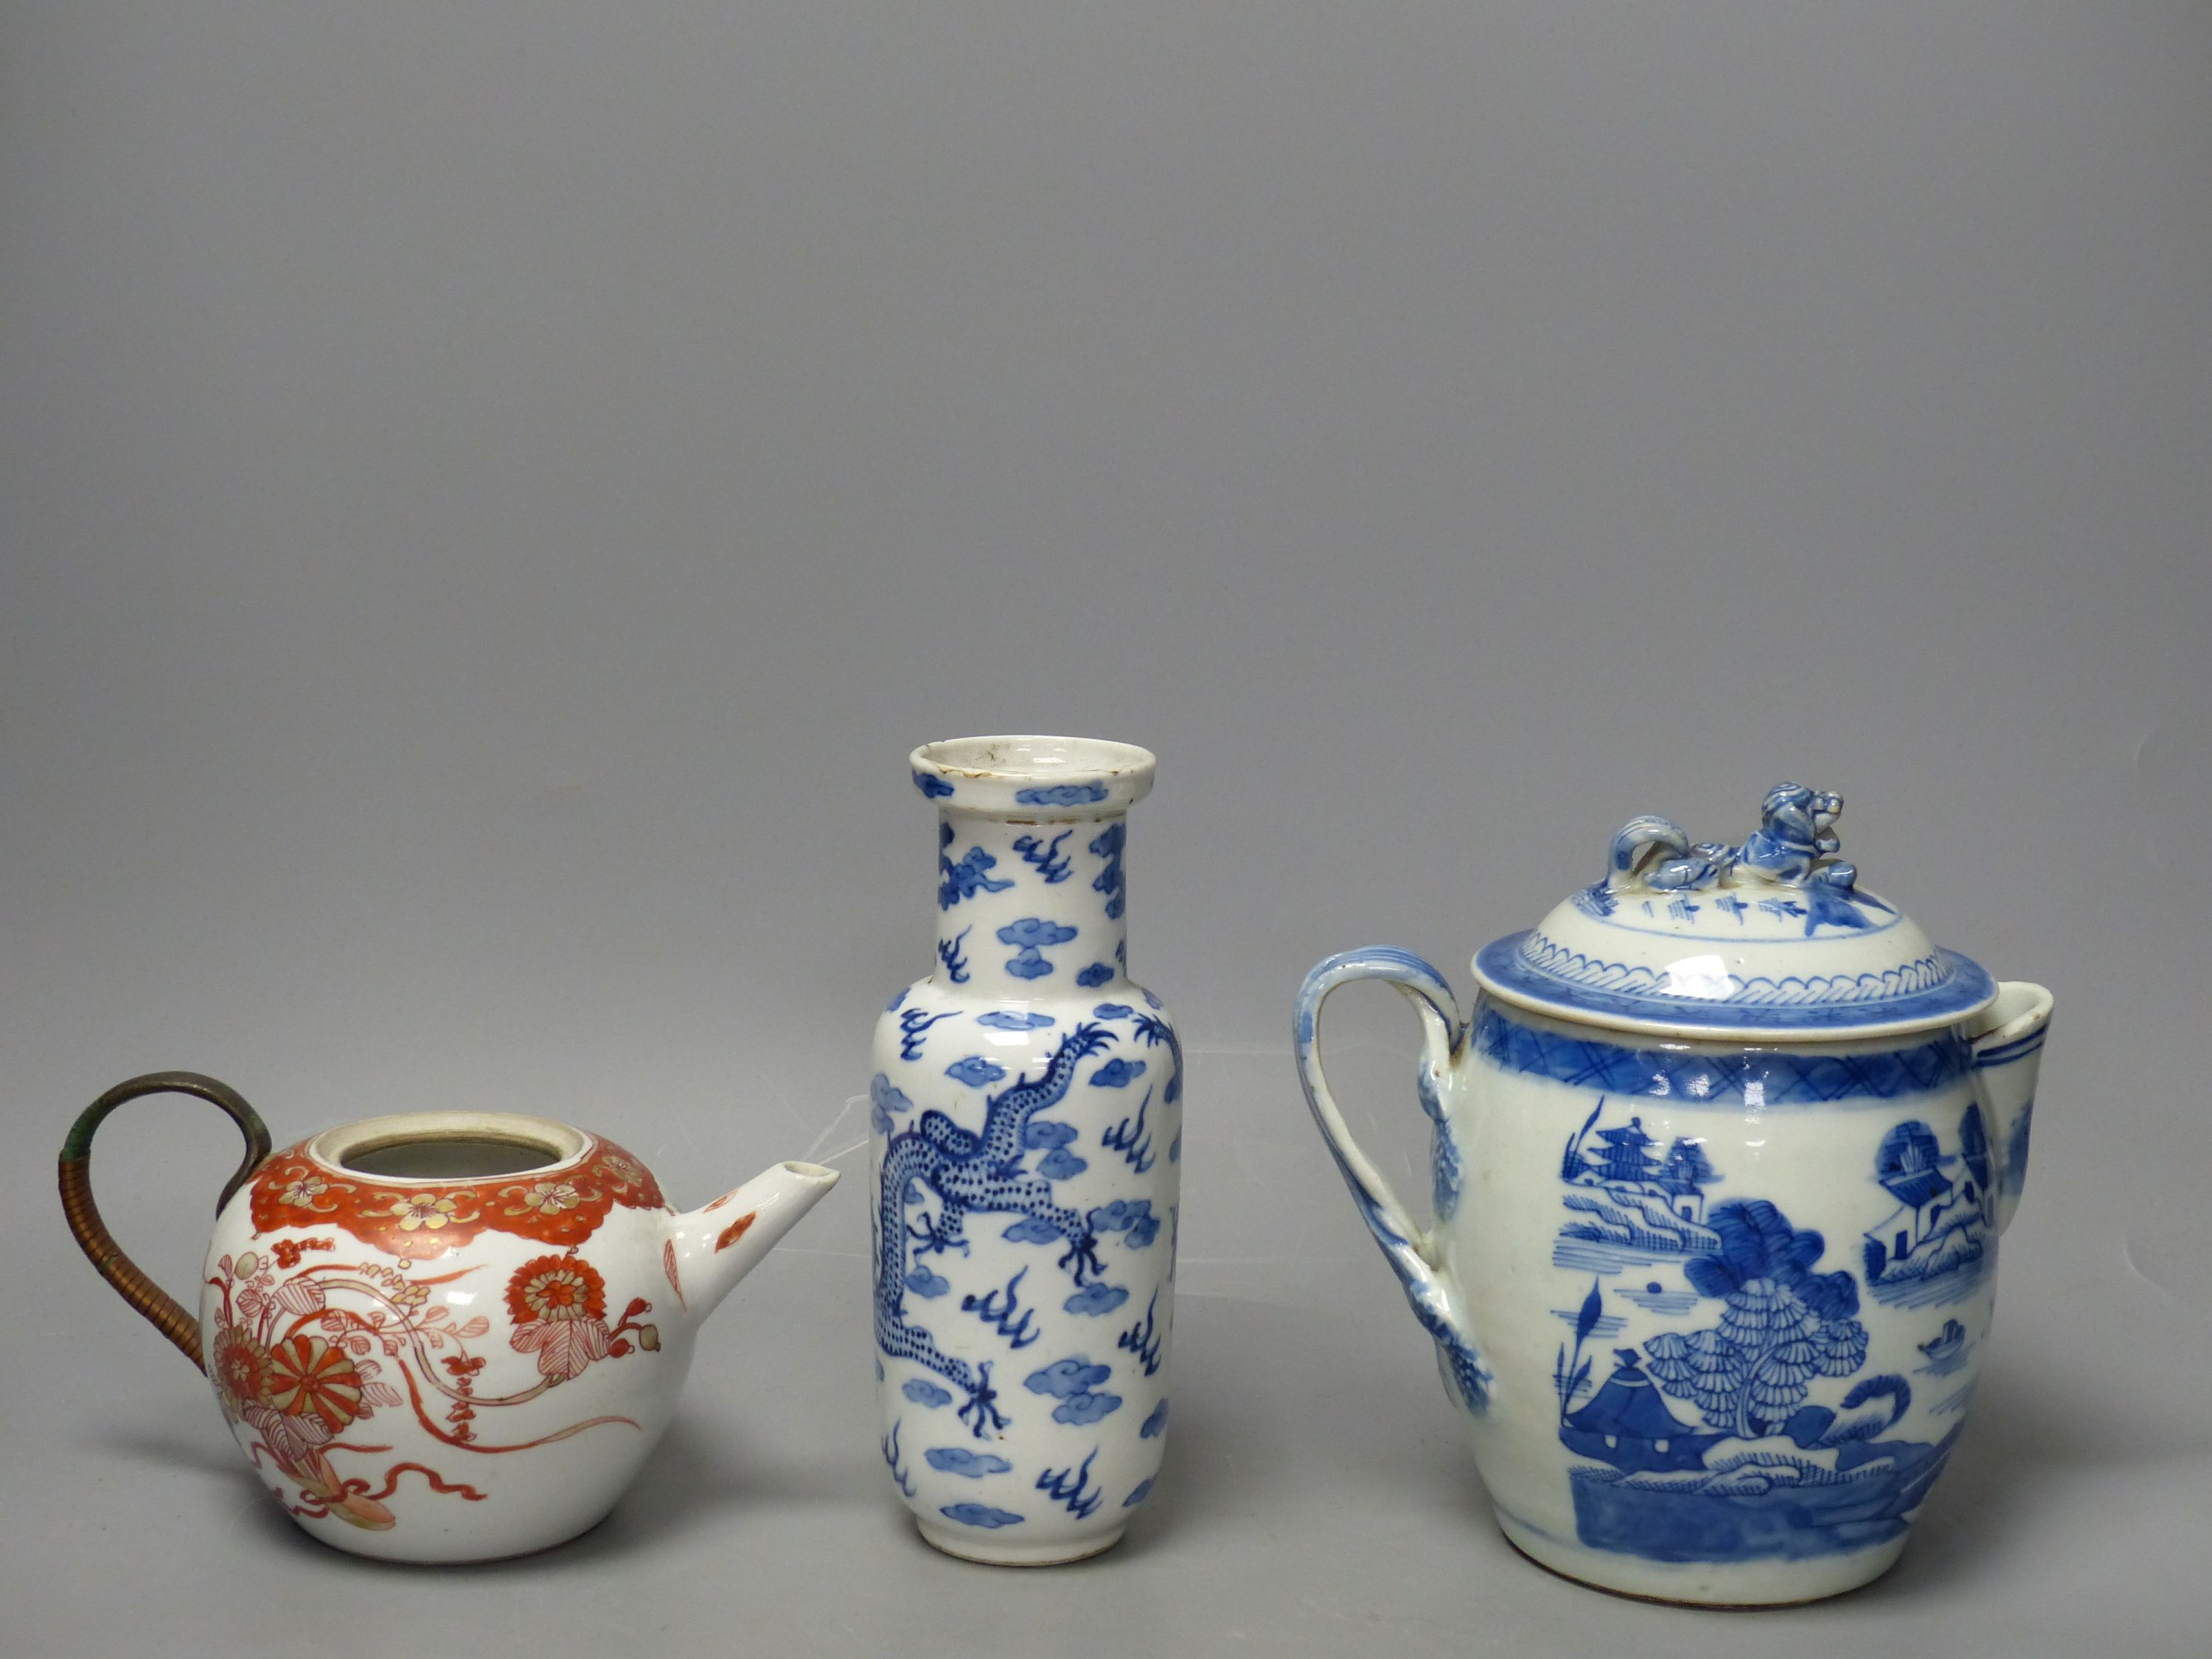 A 19th century Chinese blue and white covered jug, an early 20th century blue and white vase and a - Image 3 of 6